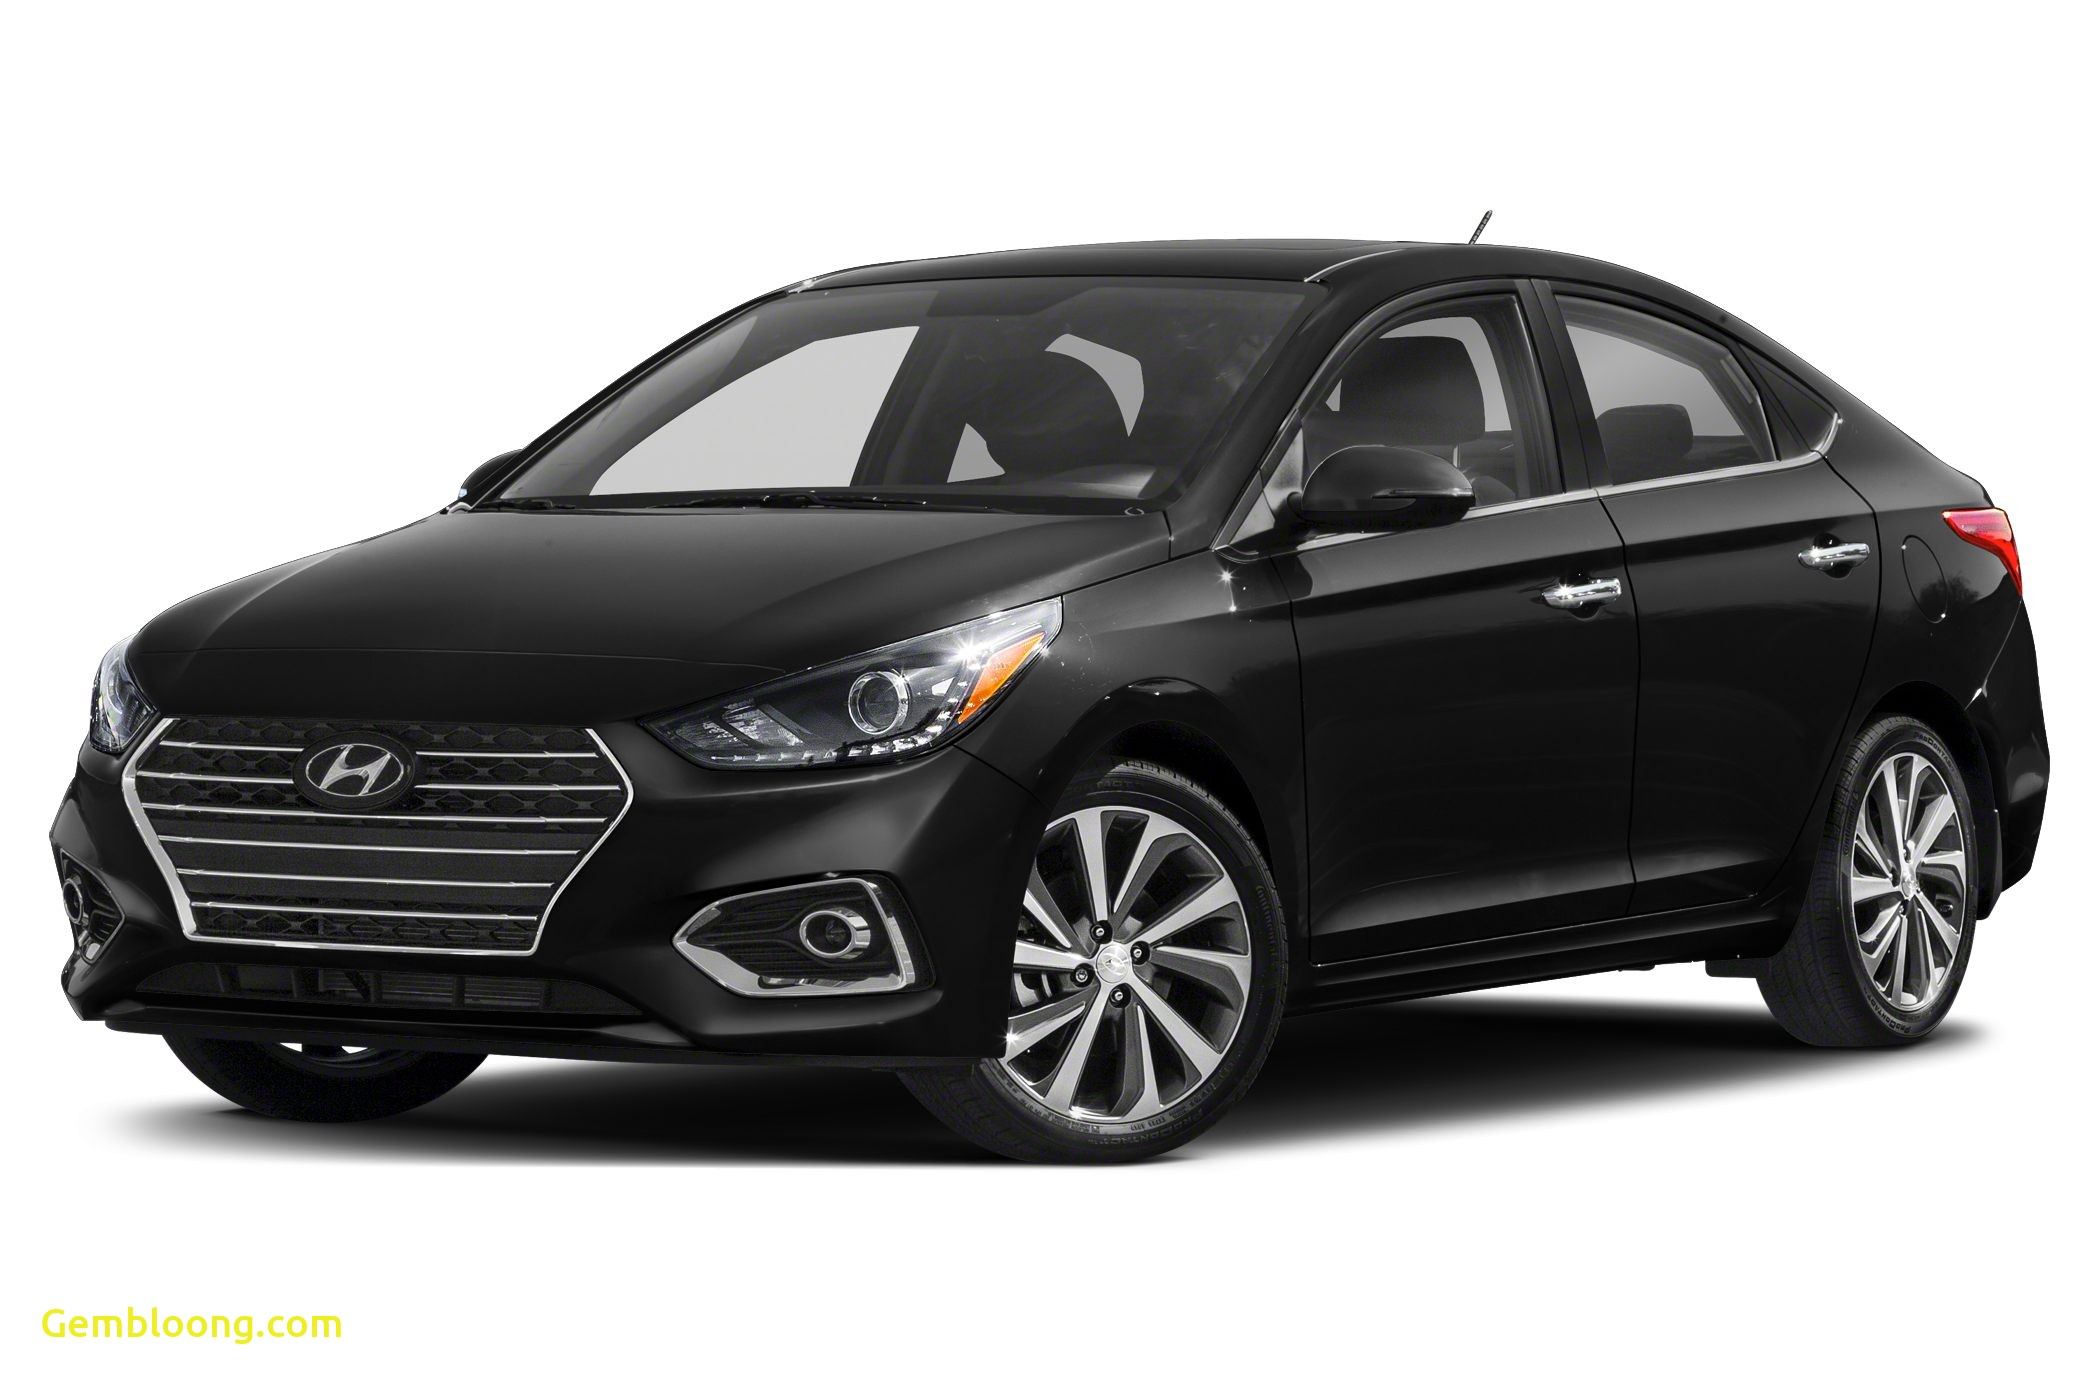 Hyundai Cars for Sale Near Me Lovely 2020 Hyundai Accent Limited 4dr Sedan Pricing and Options